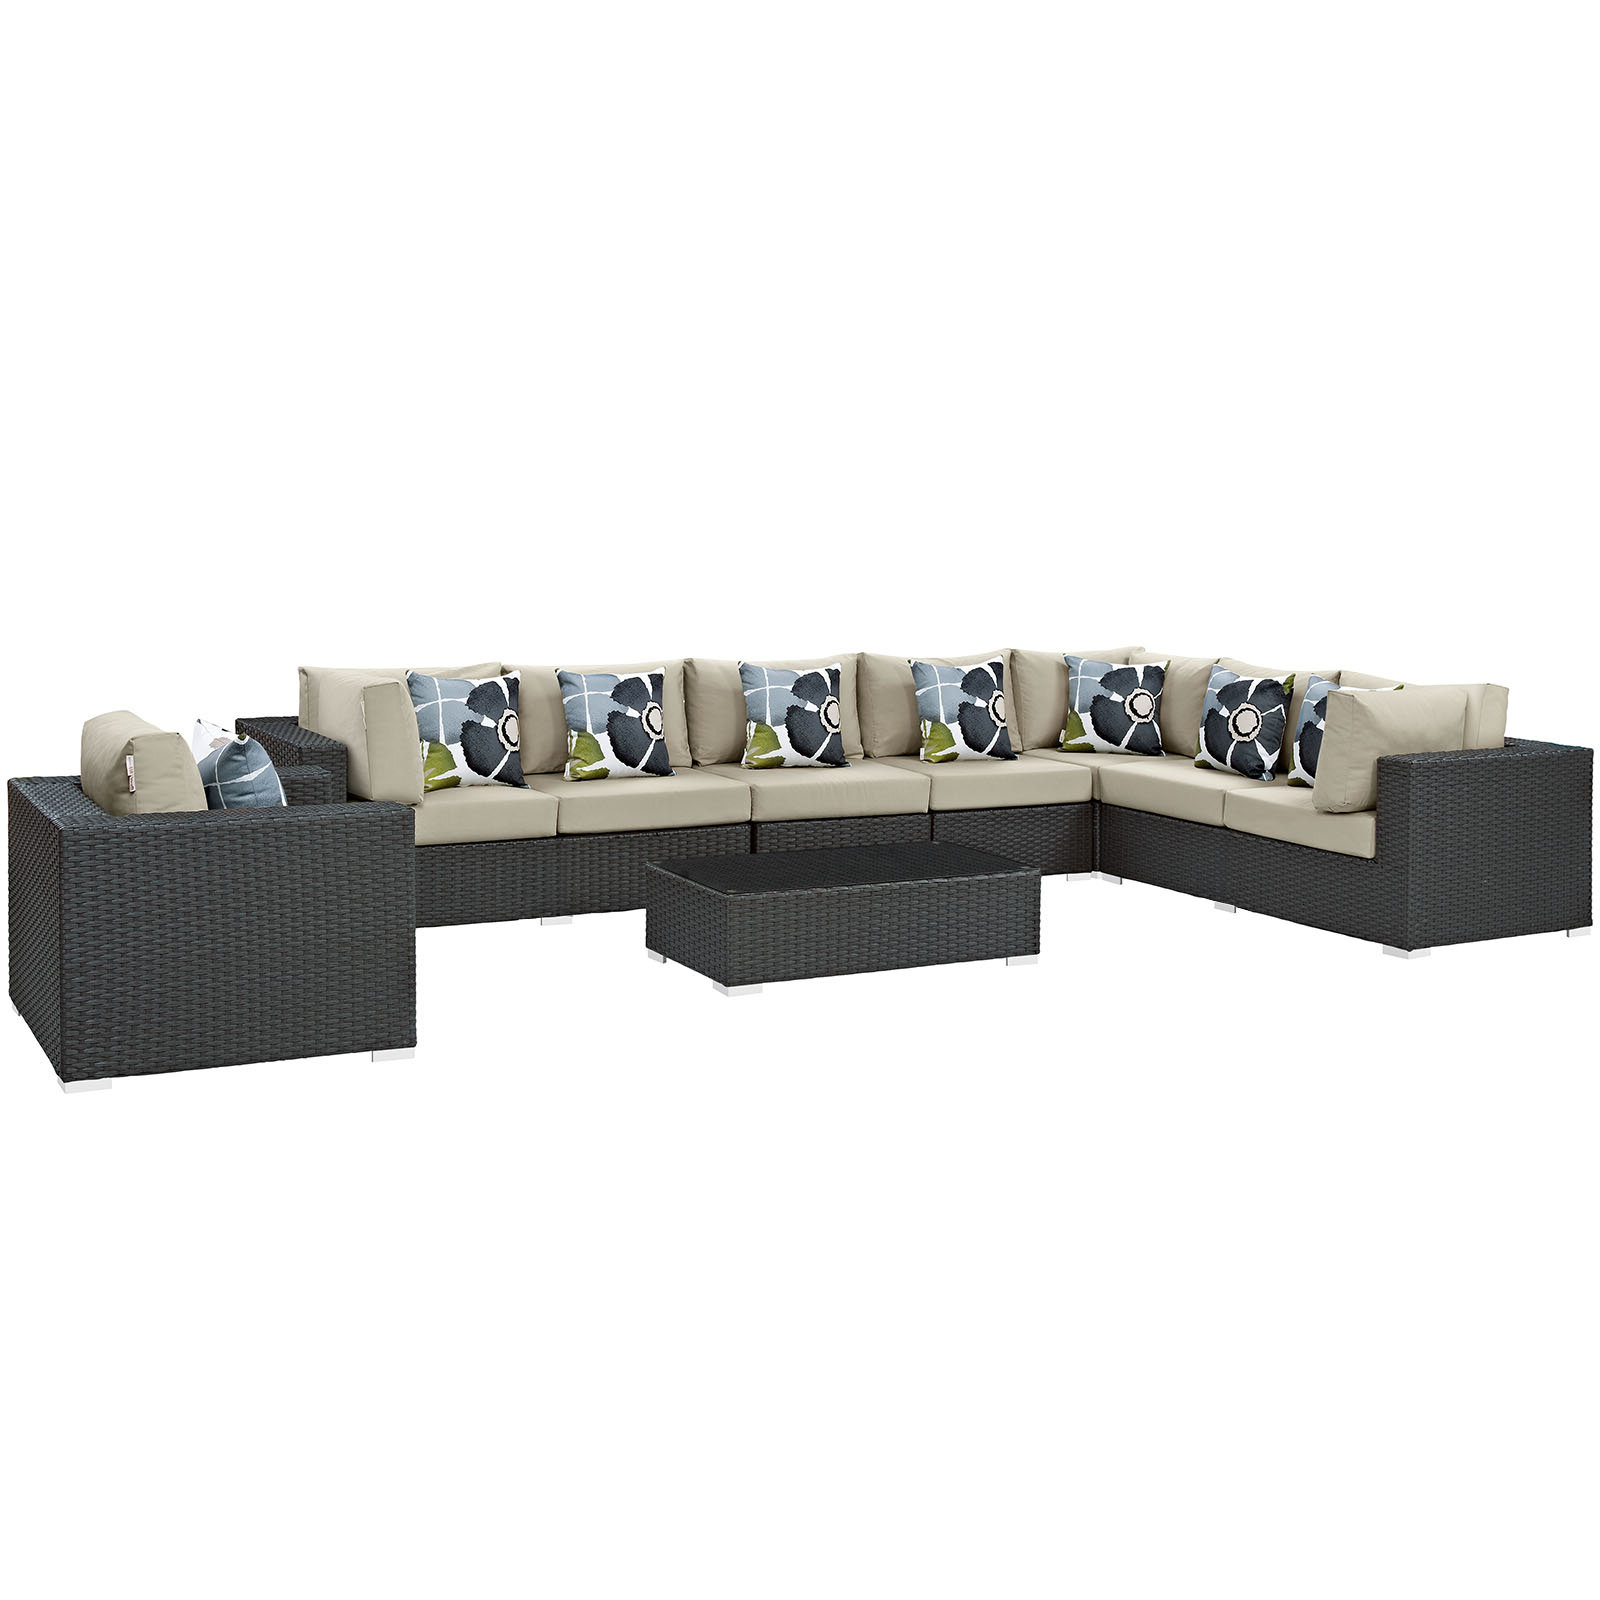 Most Recently Released Tripp 7 Piece Sunbrella Sectional Sofa With Cushions Throughout Tripp Sofa With Cushions (View 12 of 20)